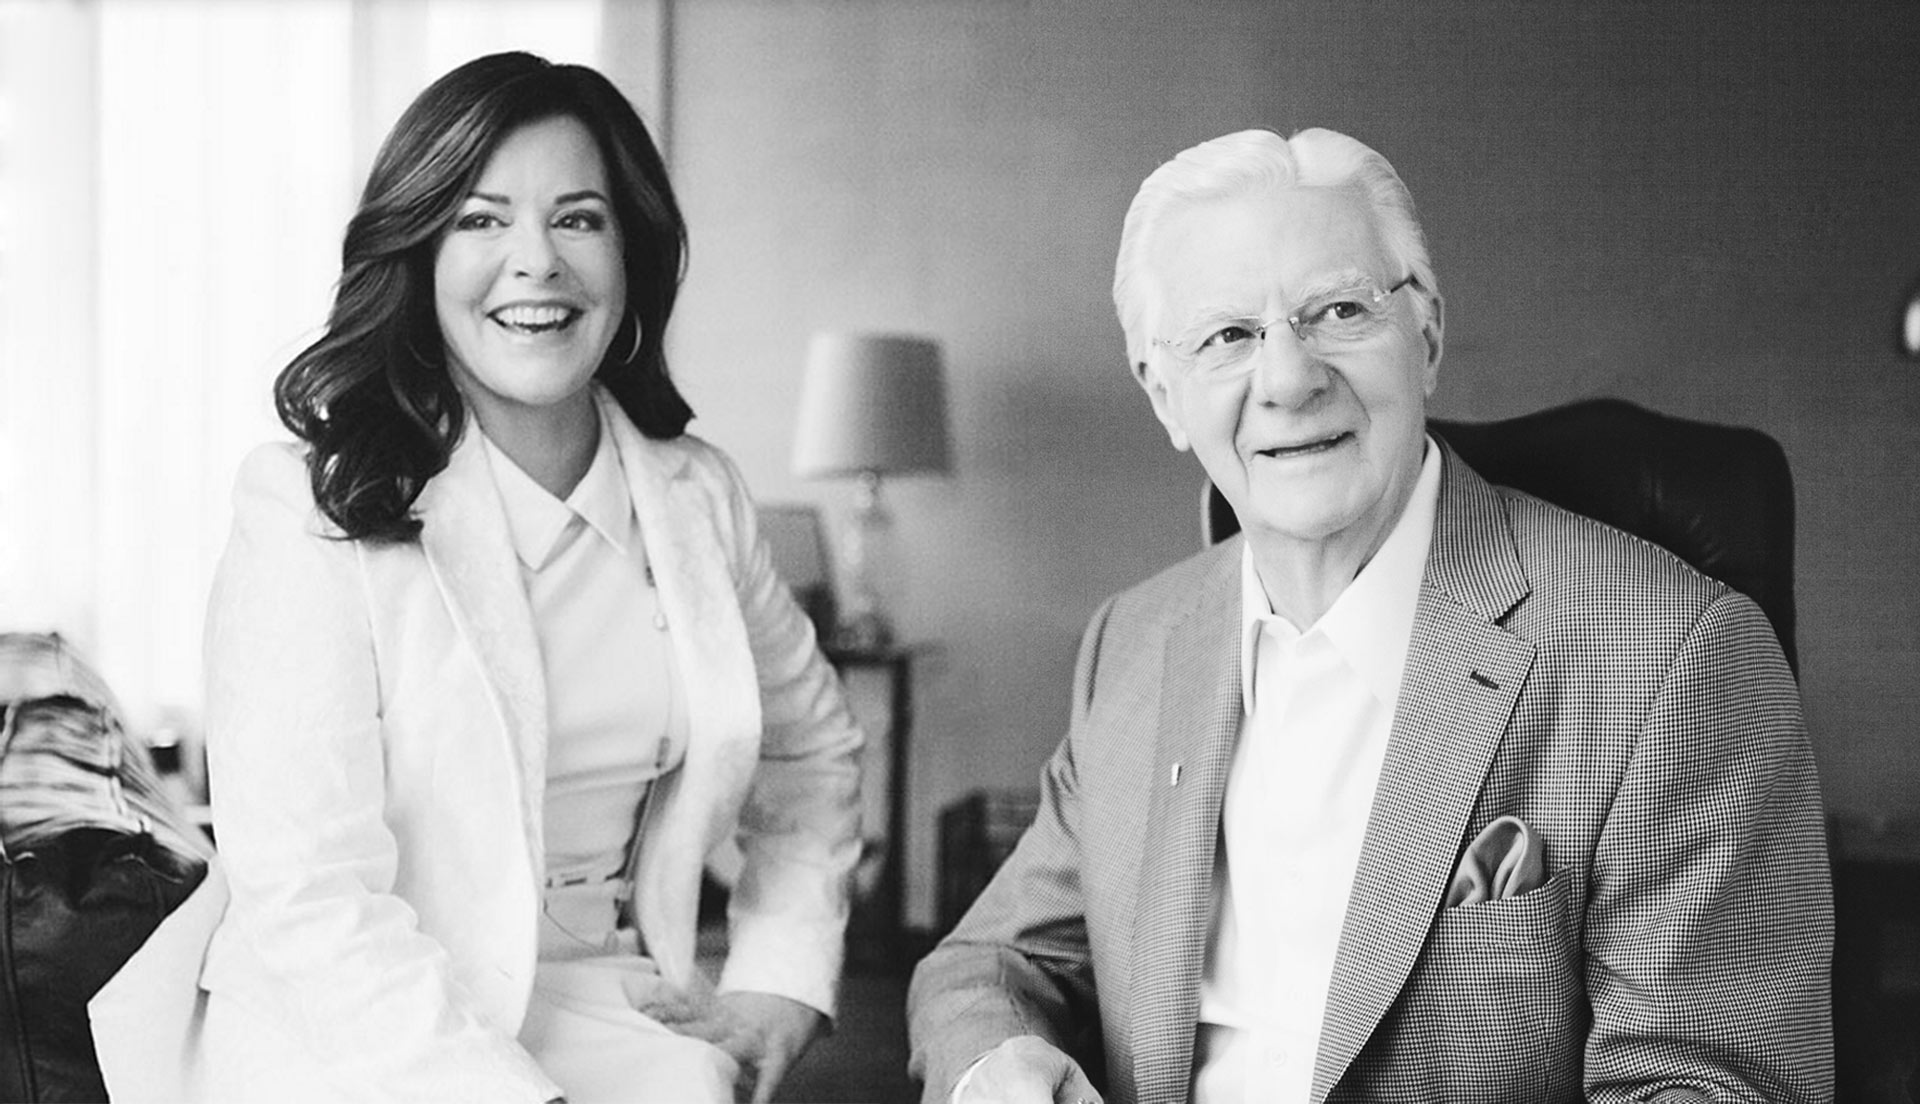 Sandy Gallagher & Bob Proctor